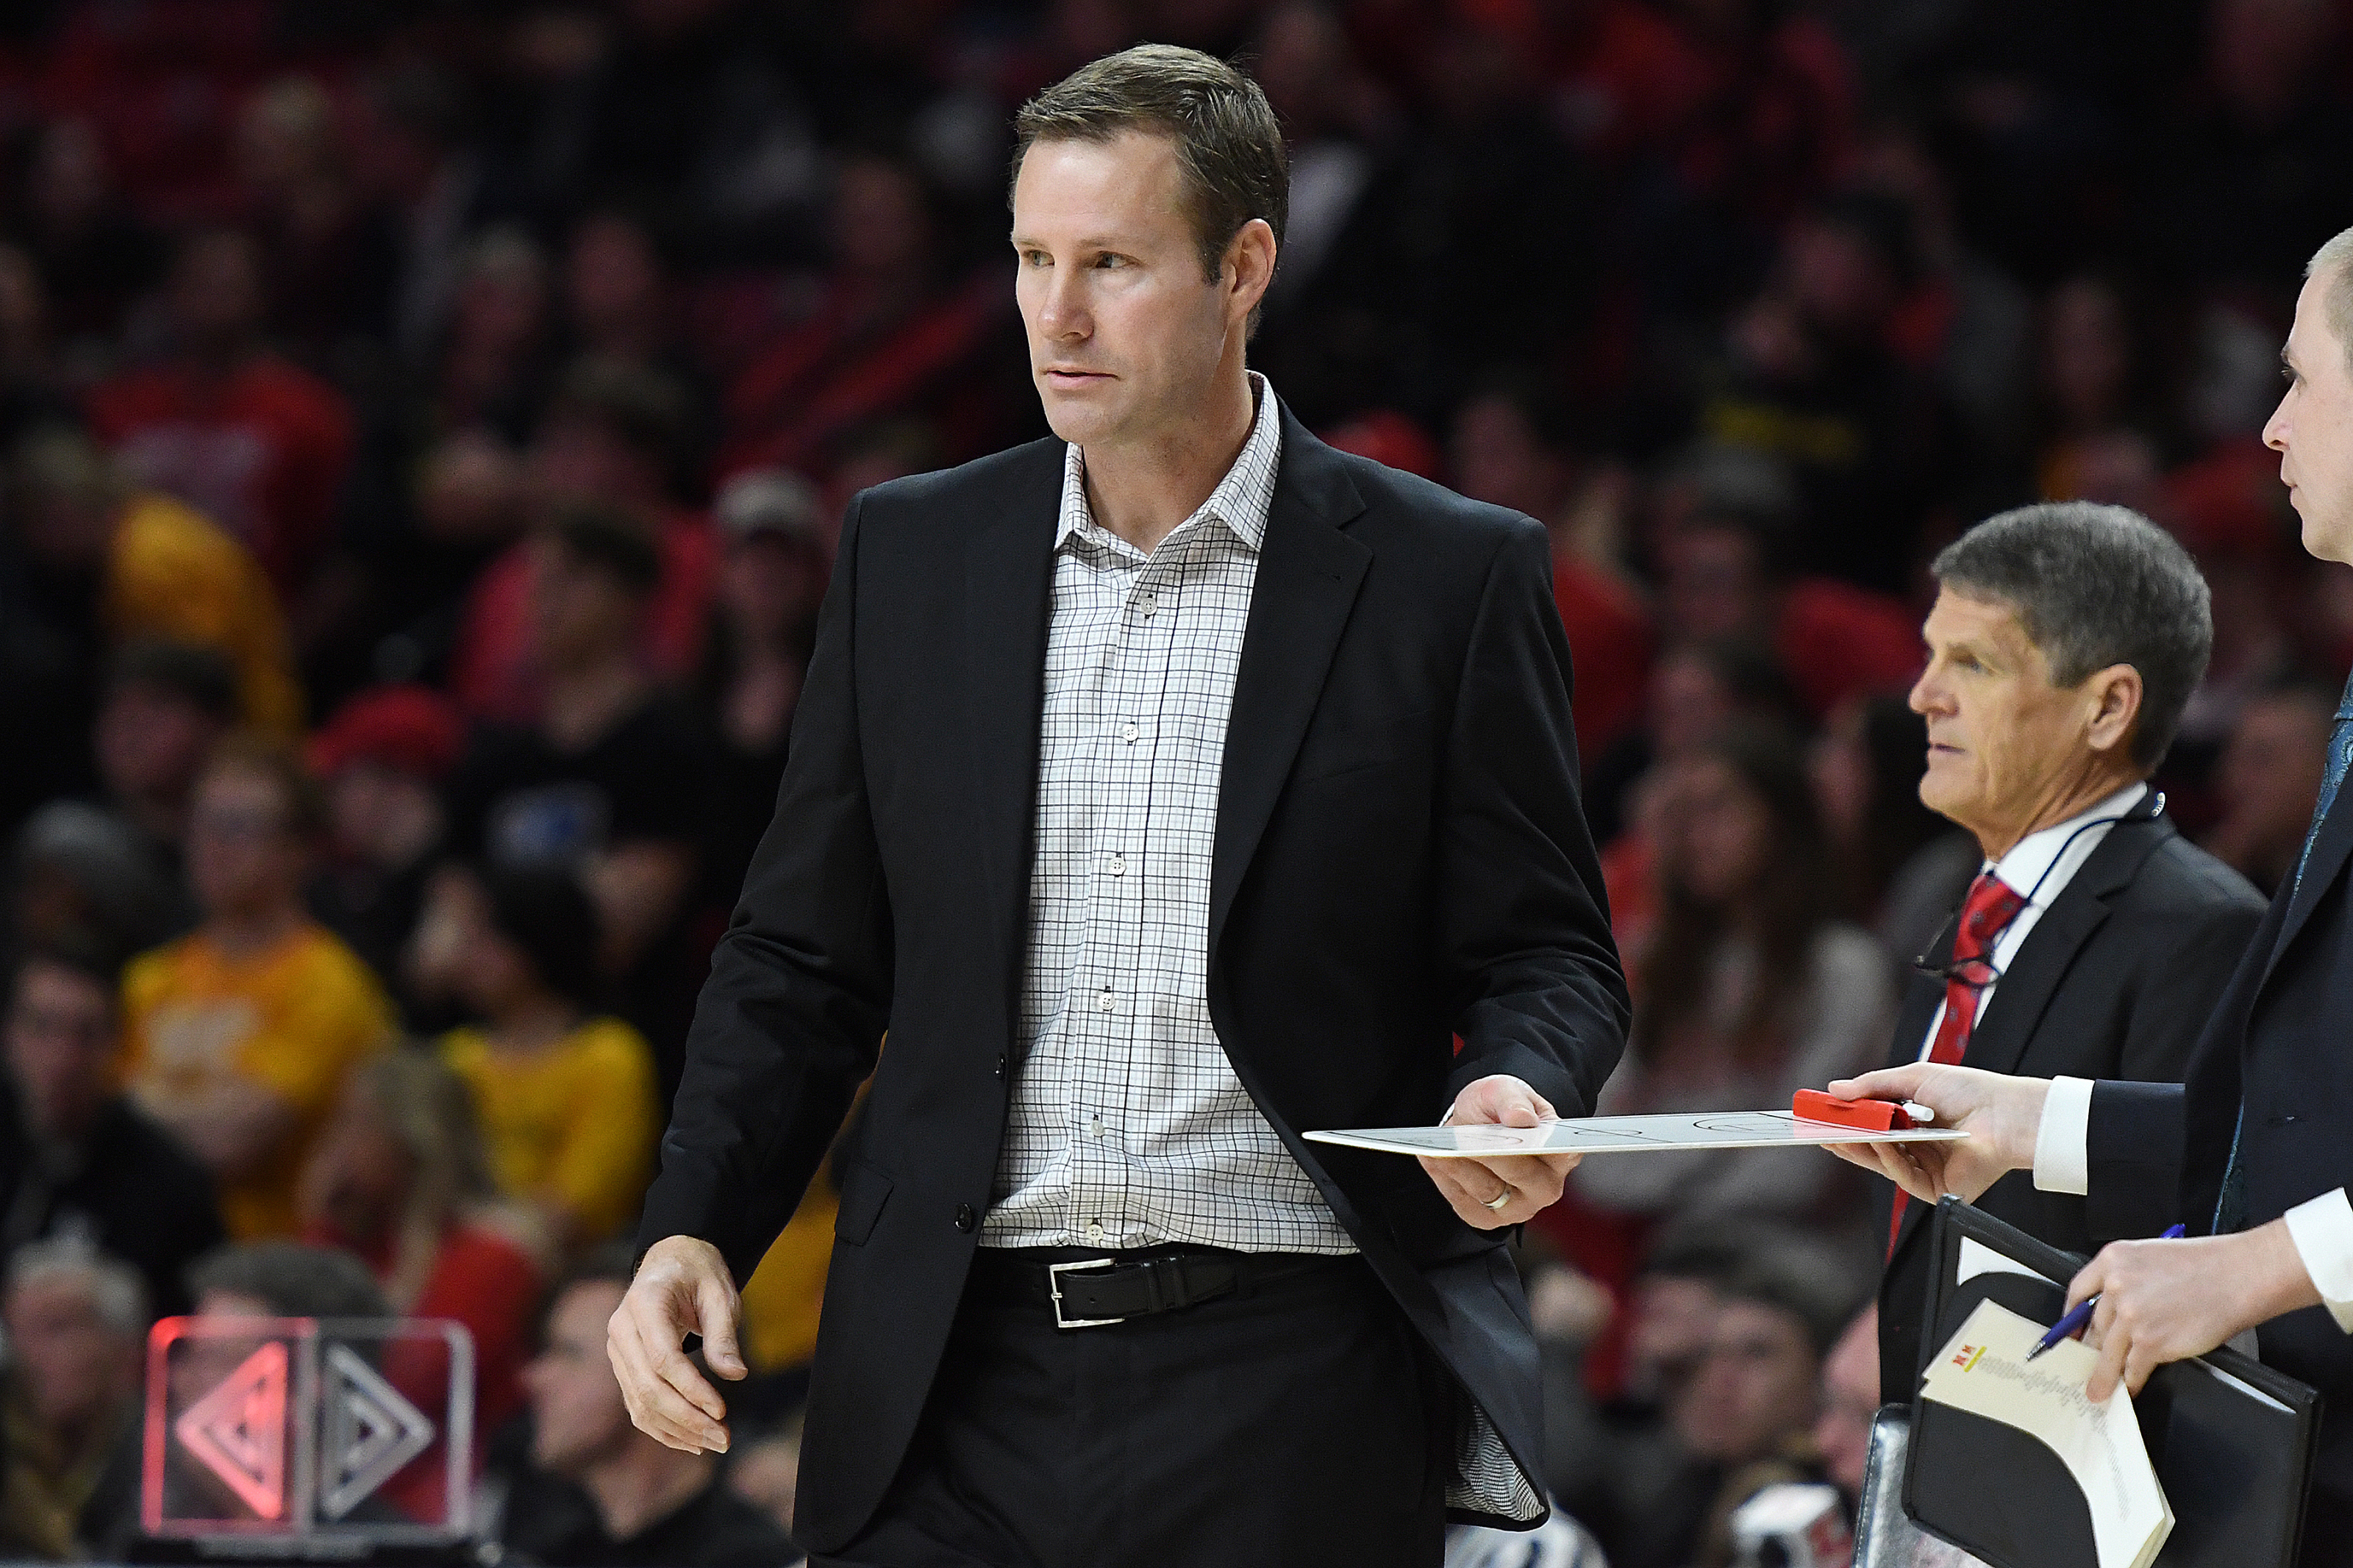 Nebraska Basketball: Team just can't get out of their own way in loss